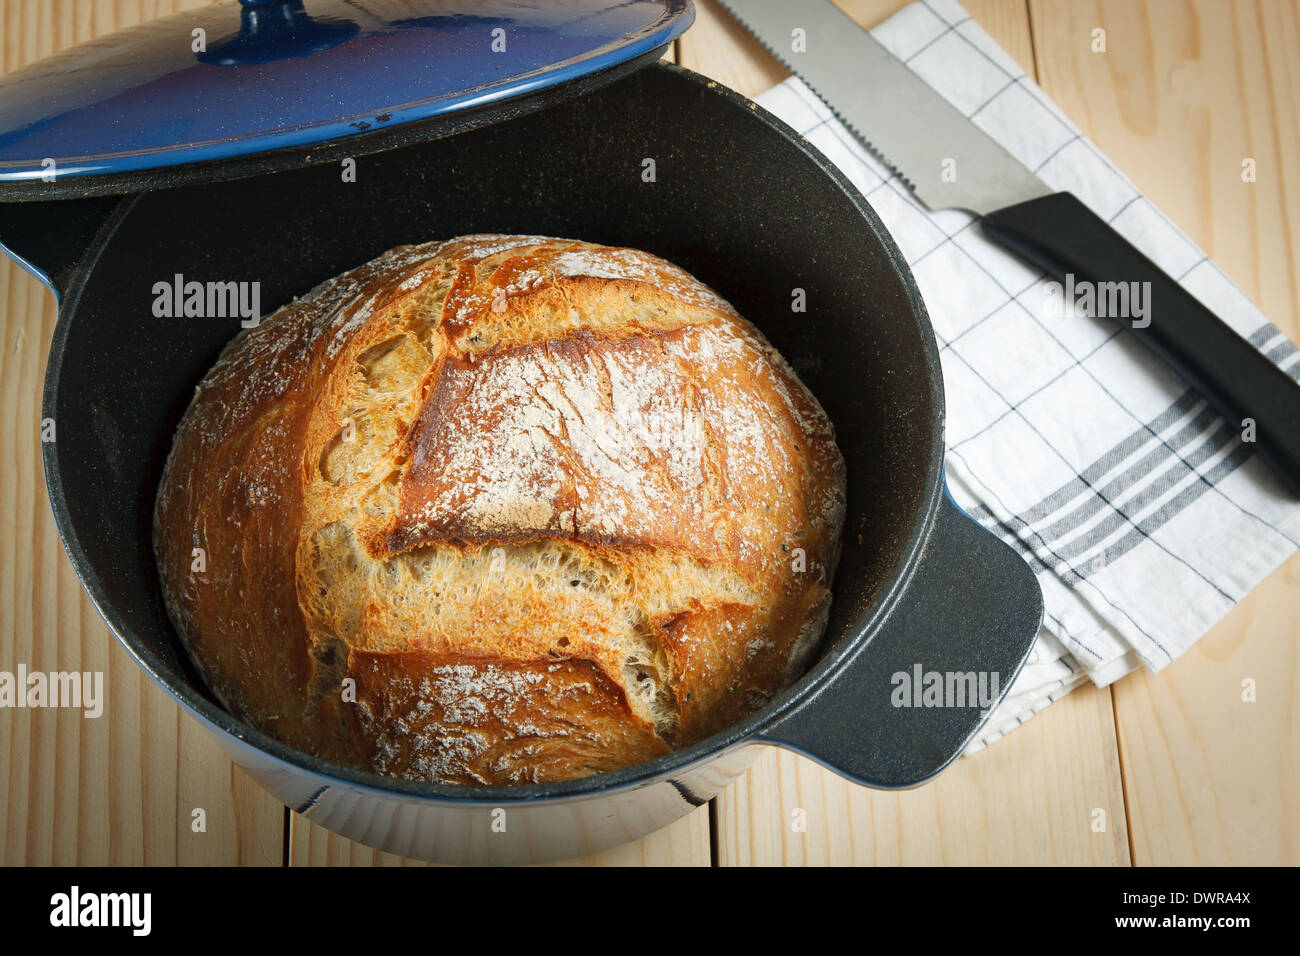 Home made bread baked in iron pot - Stock Image